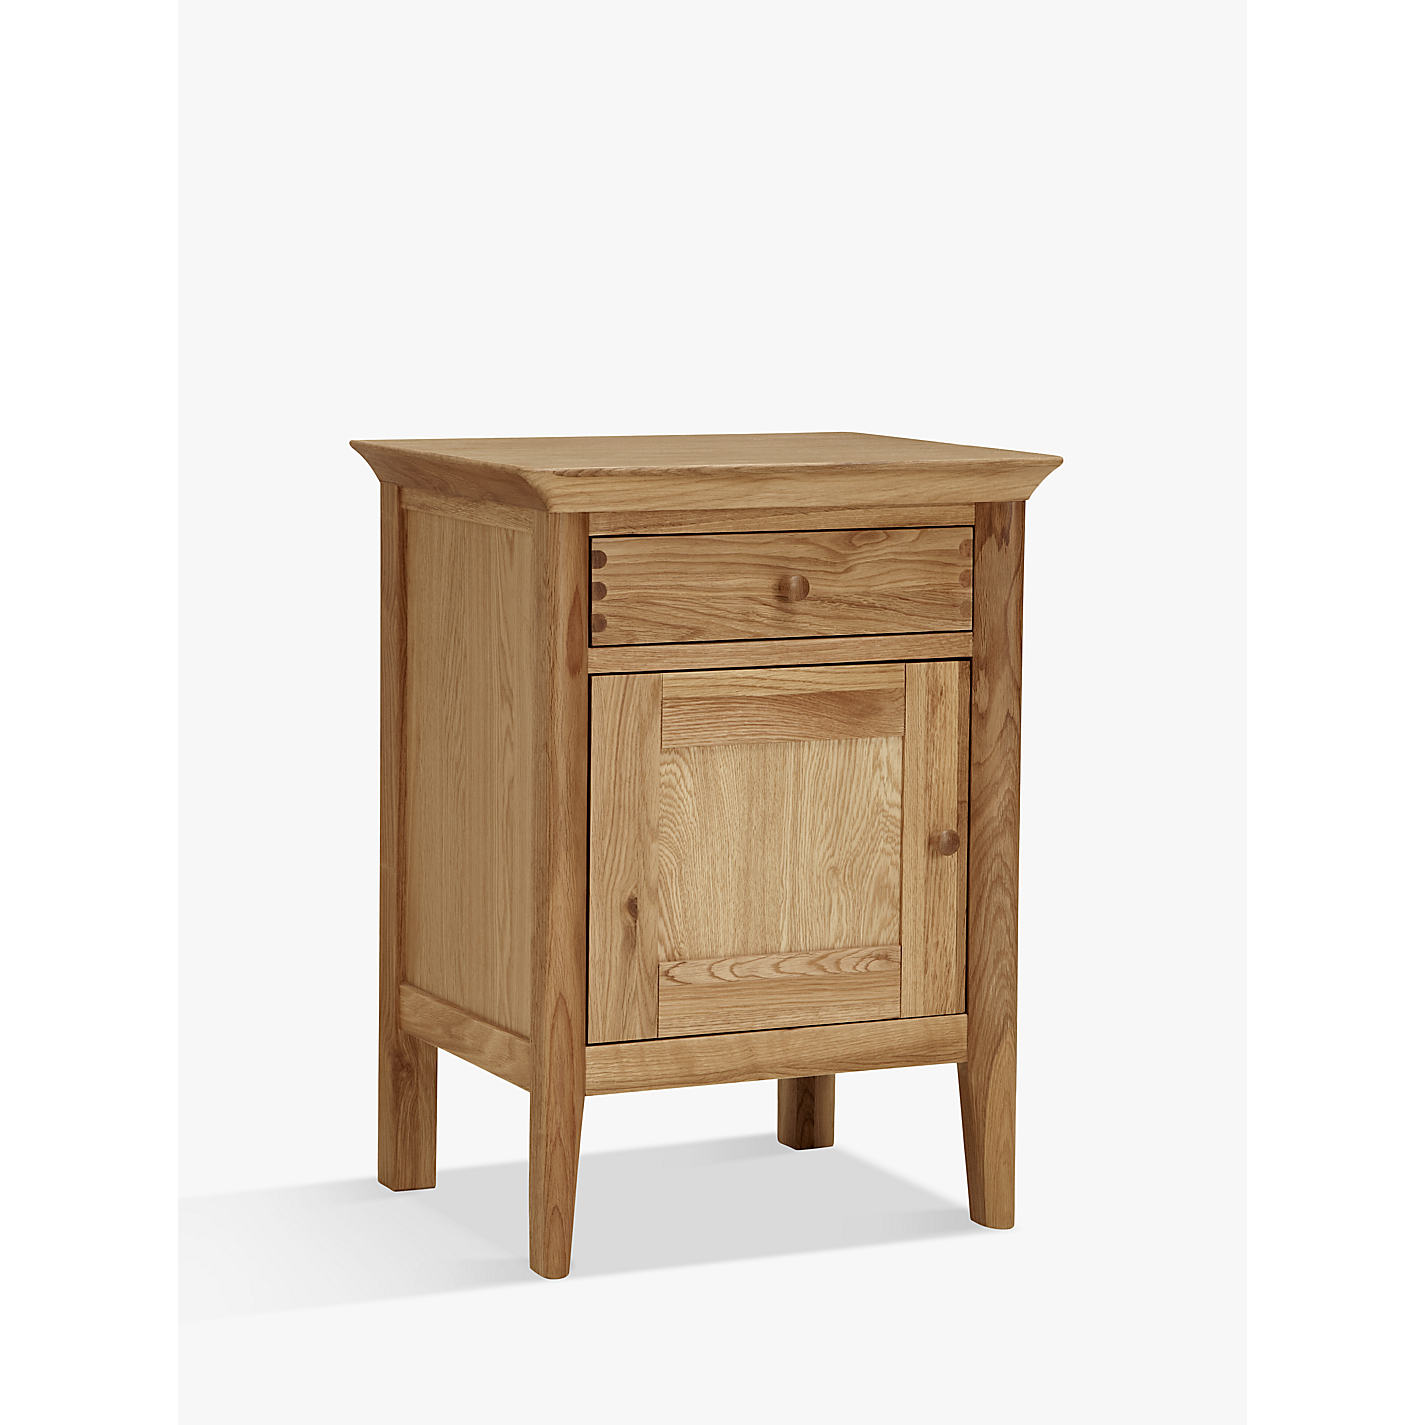 Oak bedside tables cabinets bar cabinet - Bedside table ...